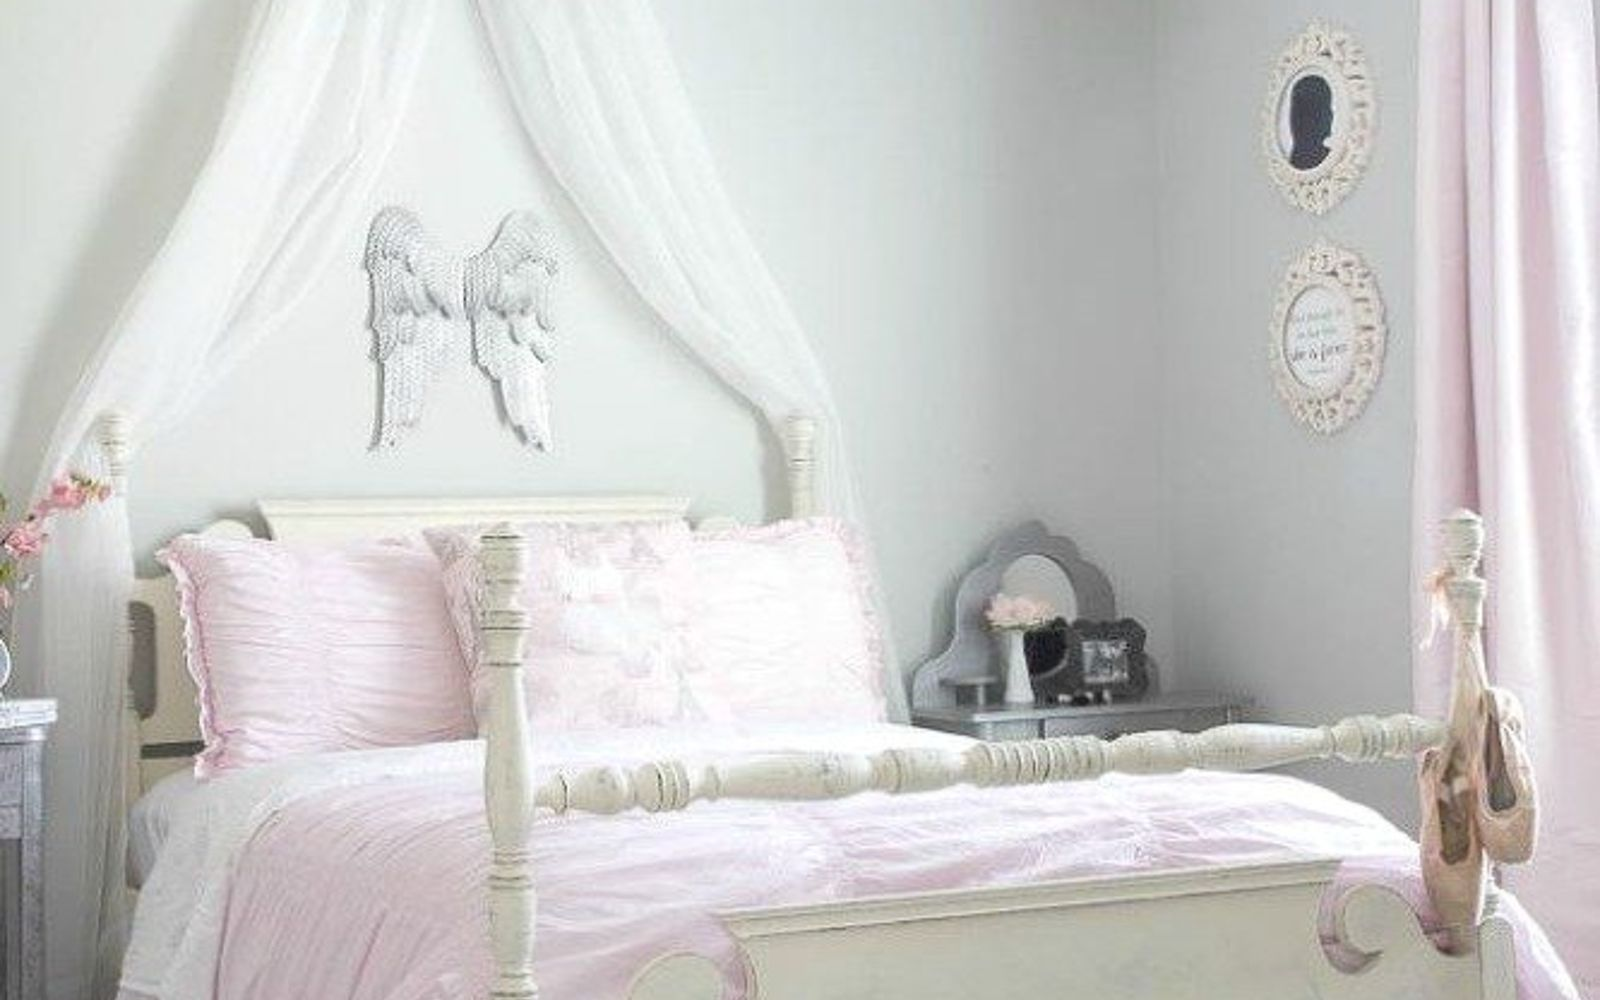 s 10 awesome paint colors to try in 2016, bedroom ideas, home decor, paint colors, Grey Owl Benjamin Moore